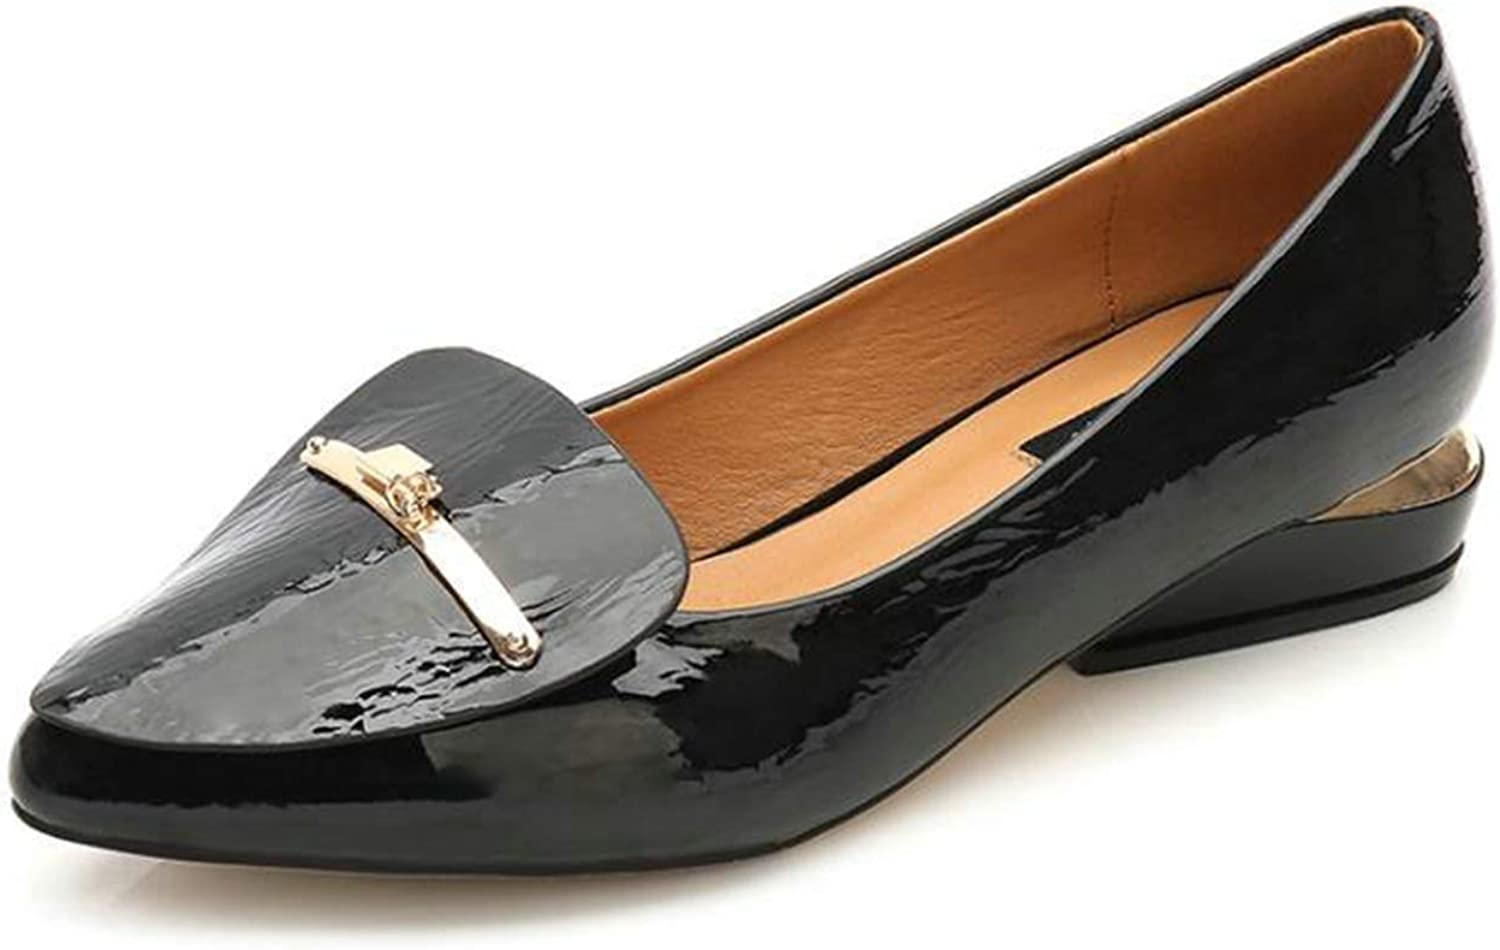 Anhon shoes Patent Leather Flat shoes Pointed Toe Woman Loafers Metal Buckle Decoration Casual Black Pink shoes Women shoes